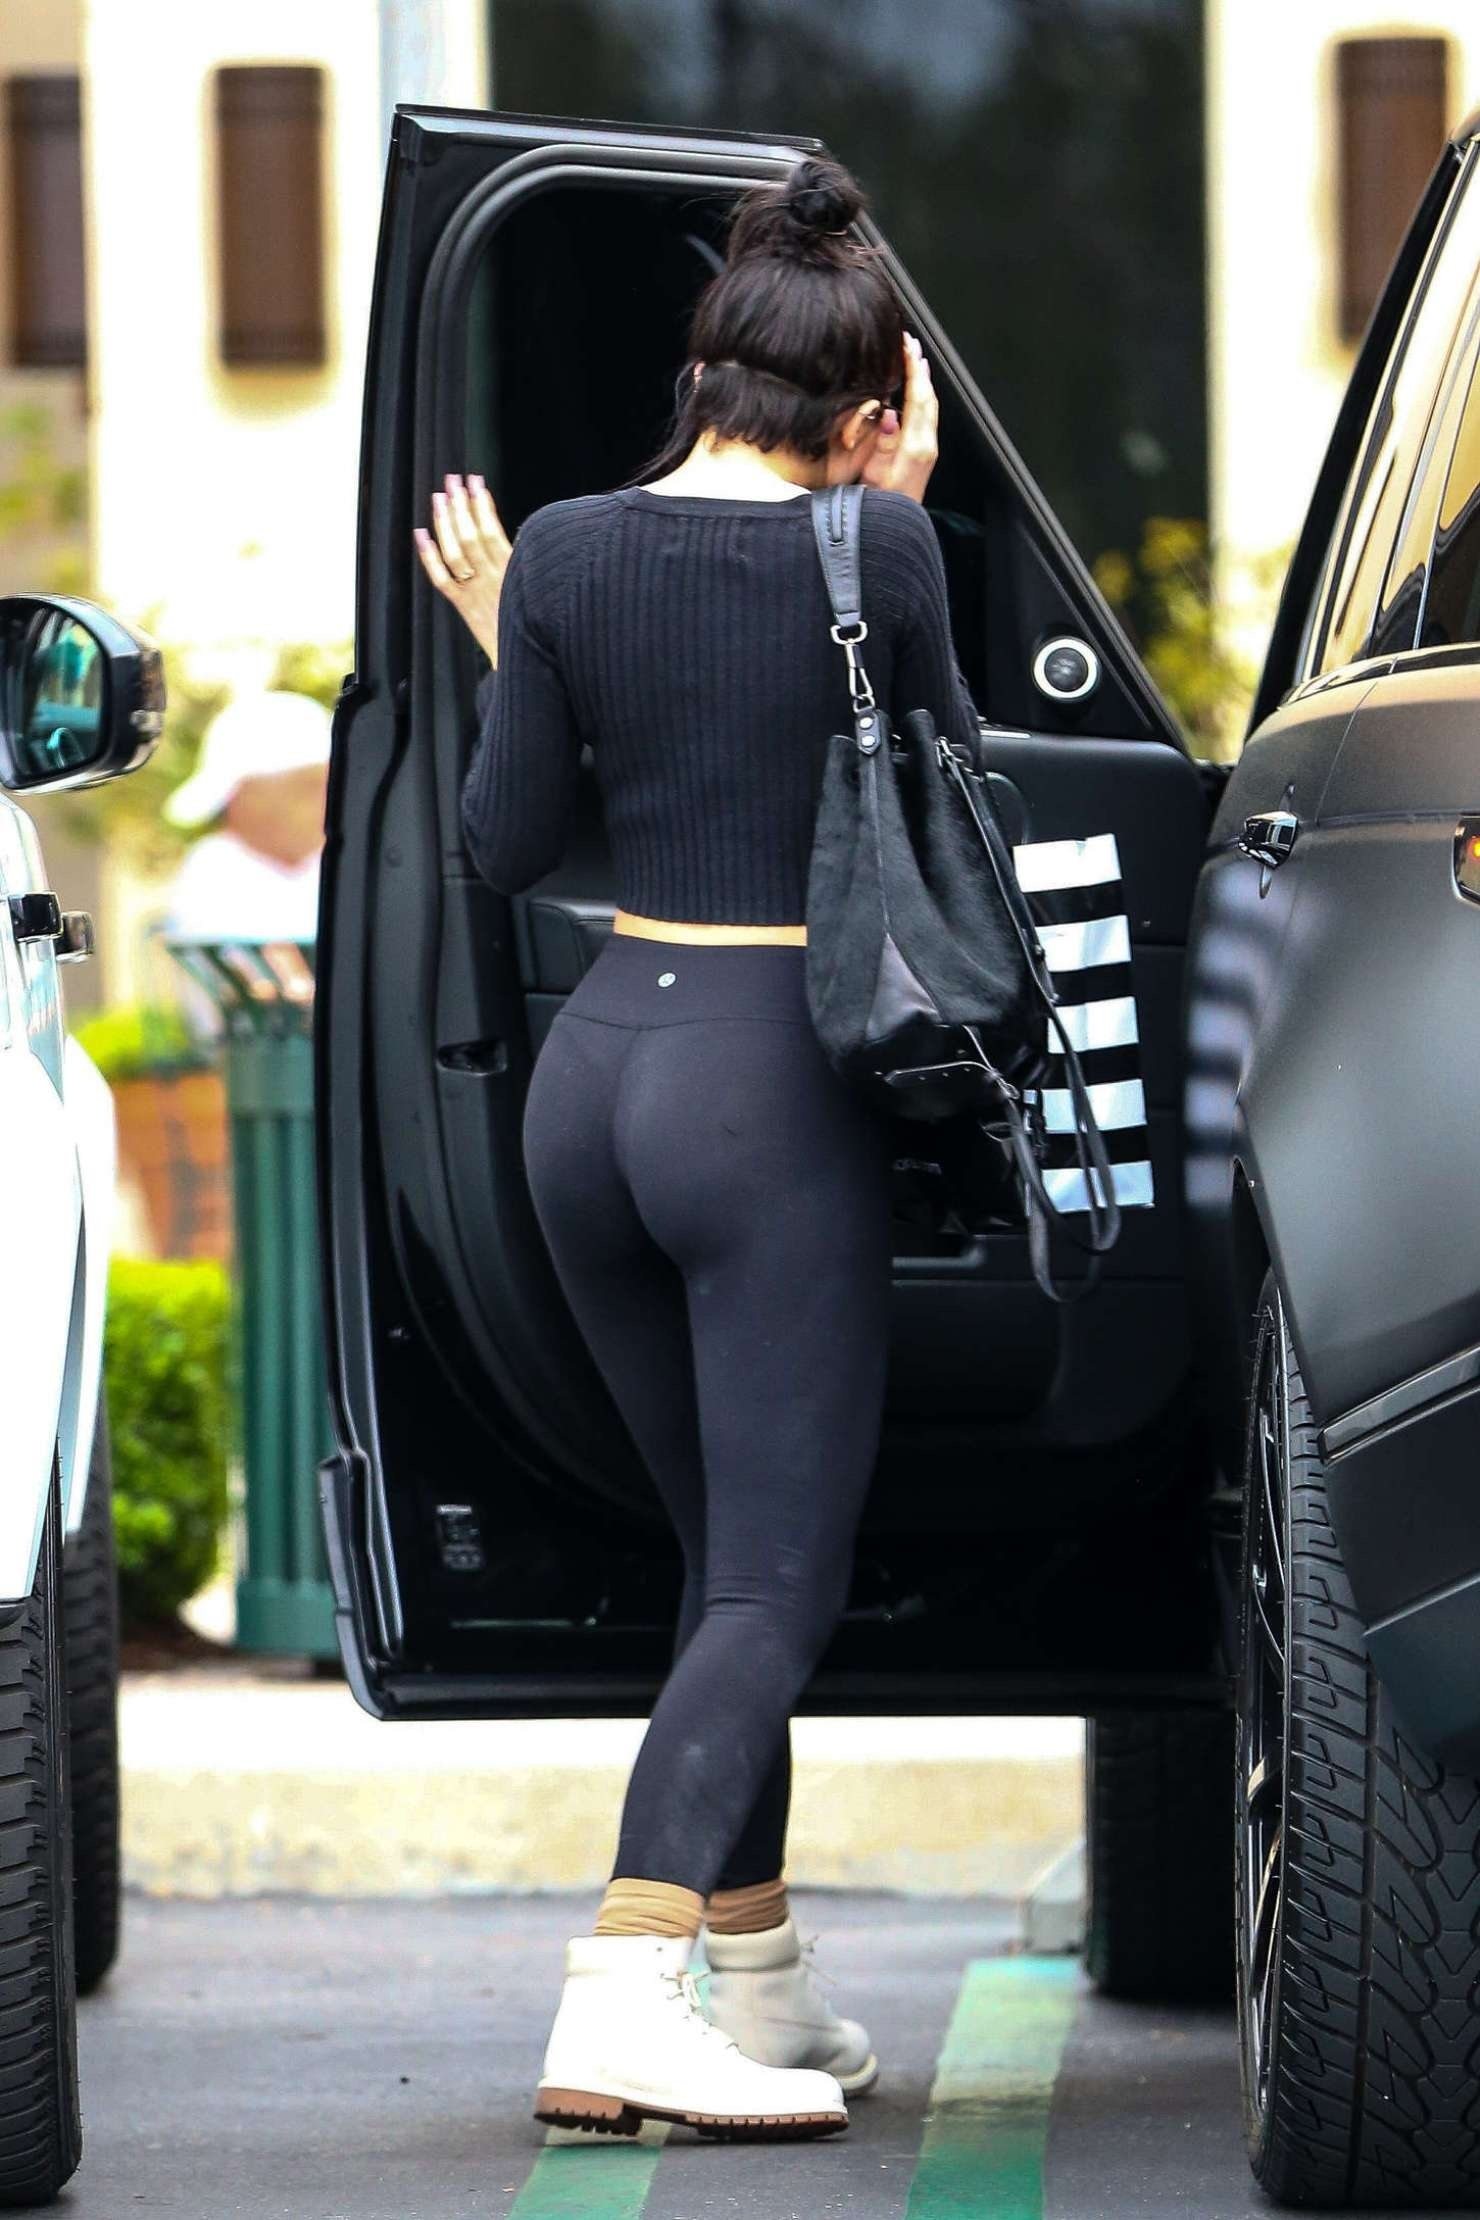 Kylie Jenner Hot In Yoga Pants Hot